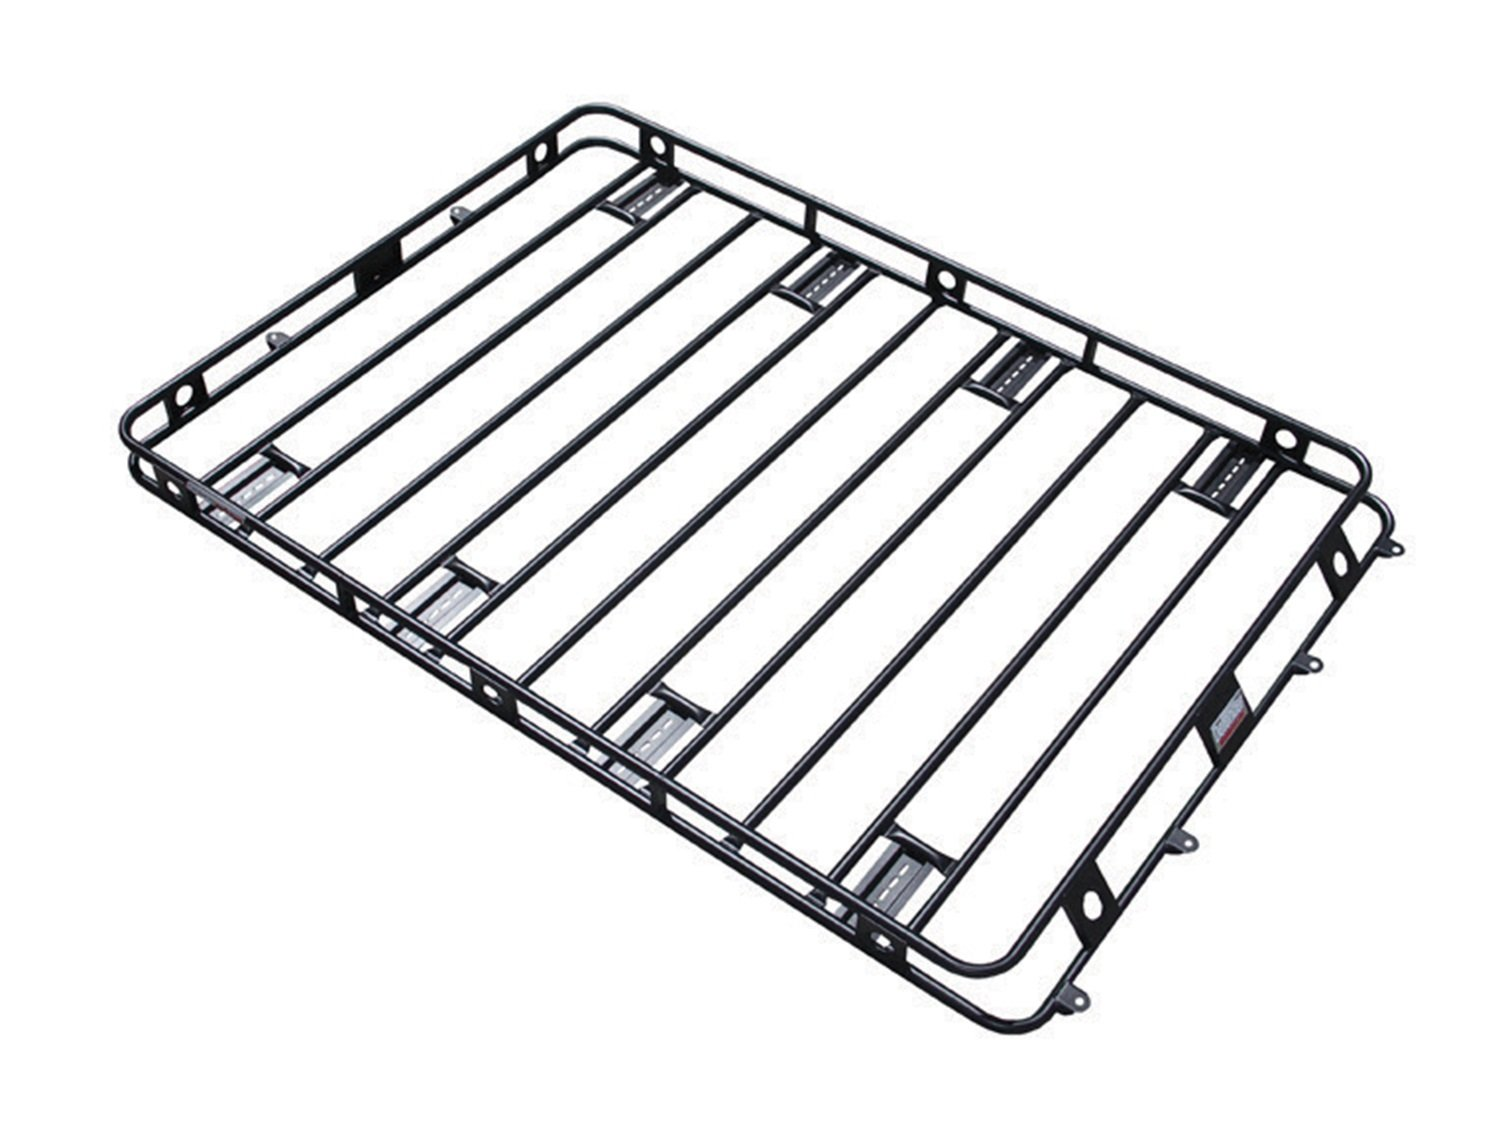 Smittybilt 50955AM Defender Roof Rack 5 ft. x 9.5 ft. x 4 in. Bolt Together Incl. AM Clamps/Brackets Defender Roof Rack